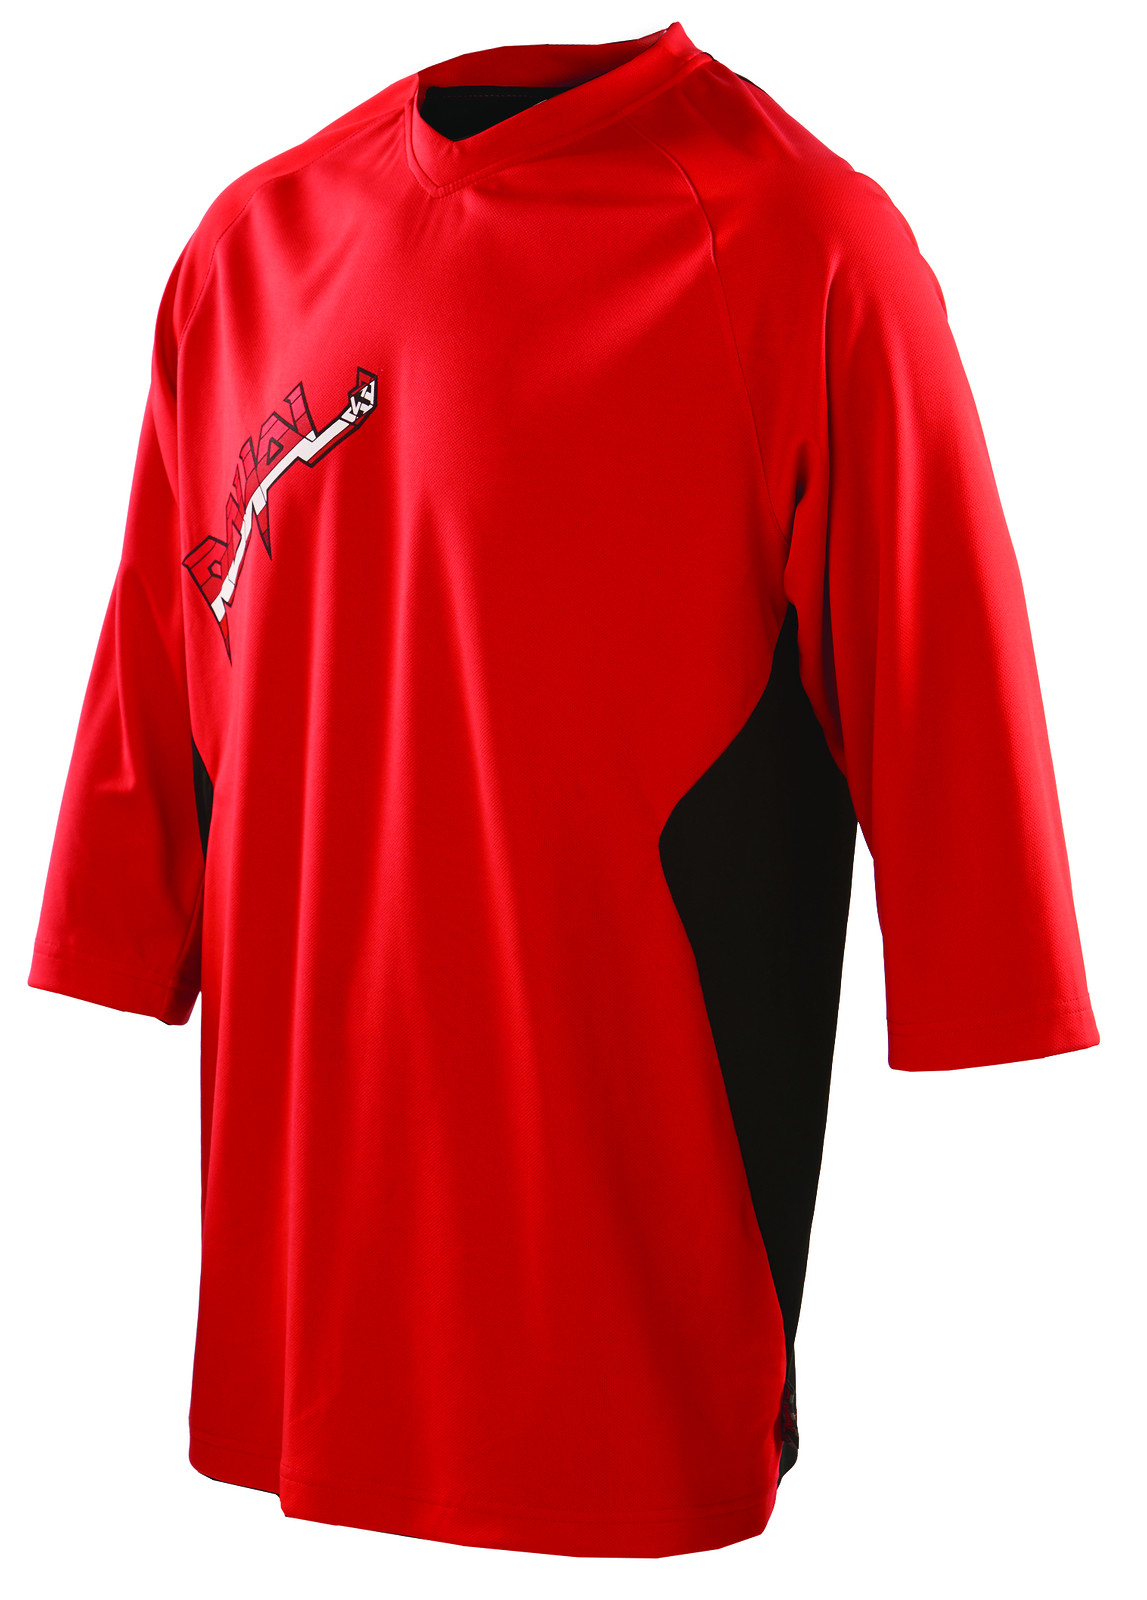 fade jersey red black f